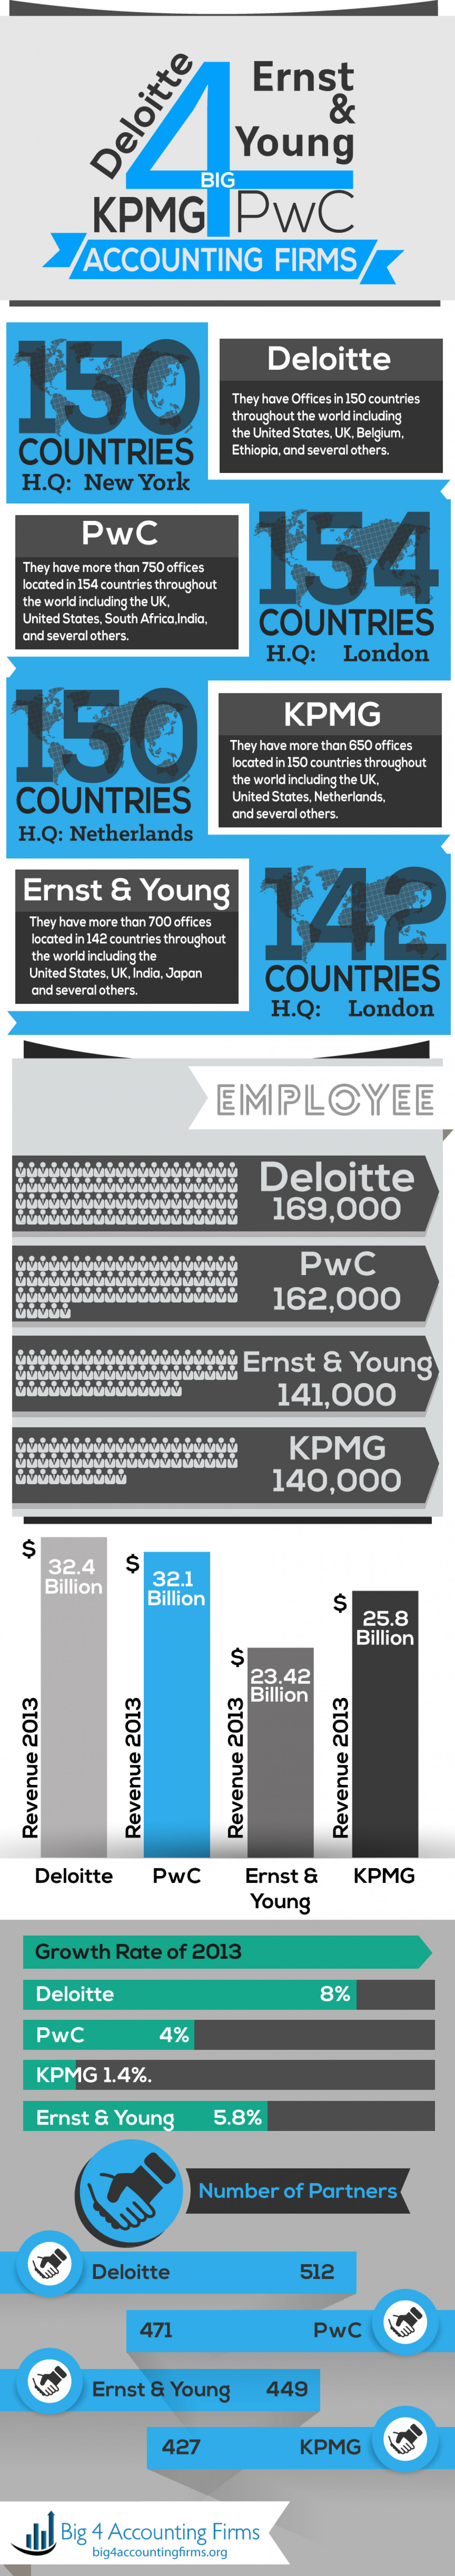 The Big Four Accounting Firms Infographic